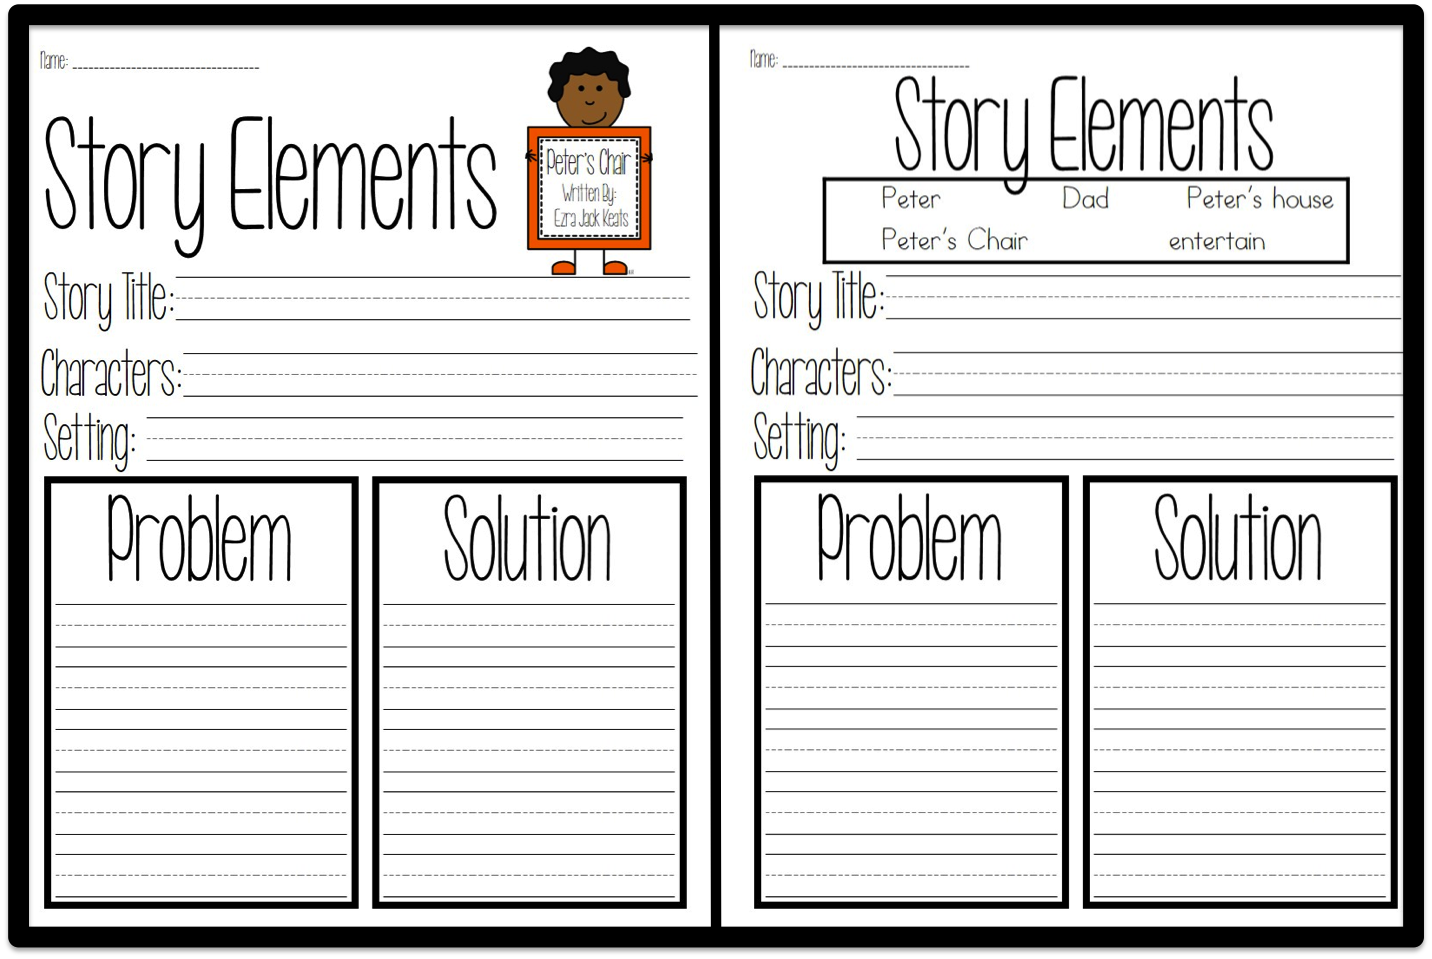 Worksheets Story Elements Worksheets its keats week where the first graders are my students generate their own answers for story elements worksheet however there some who benefit from differentiated instructi